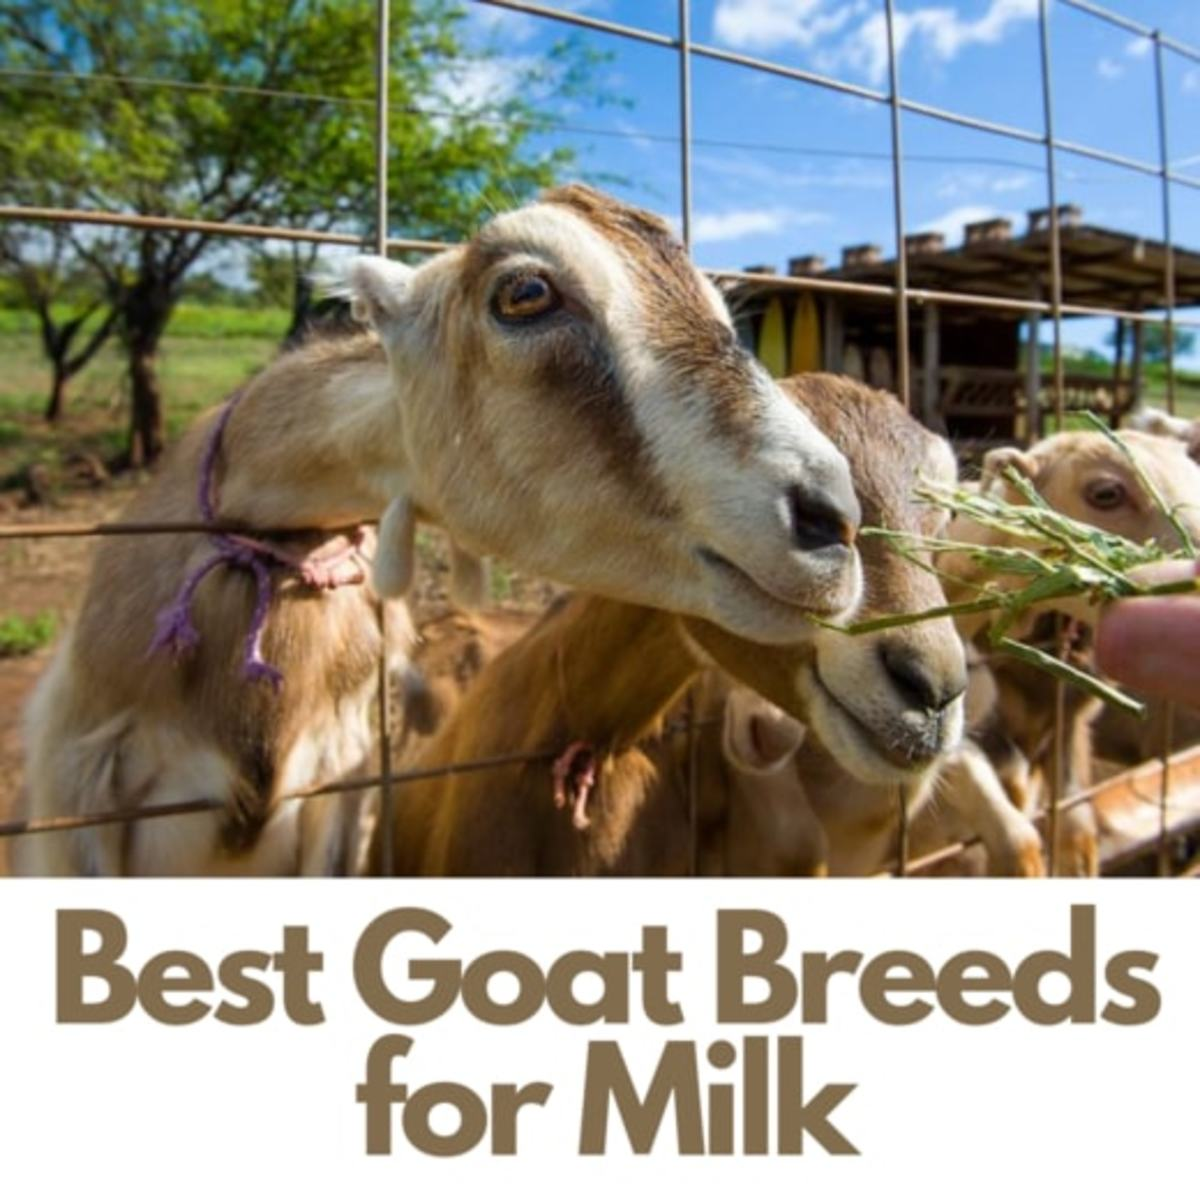 25 Best Dairy Goat Breeds - Goats for Milk